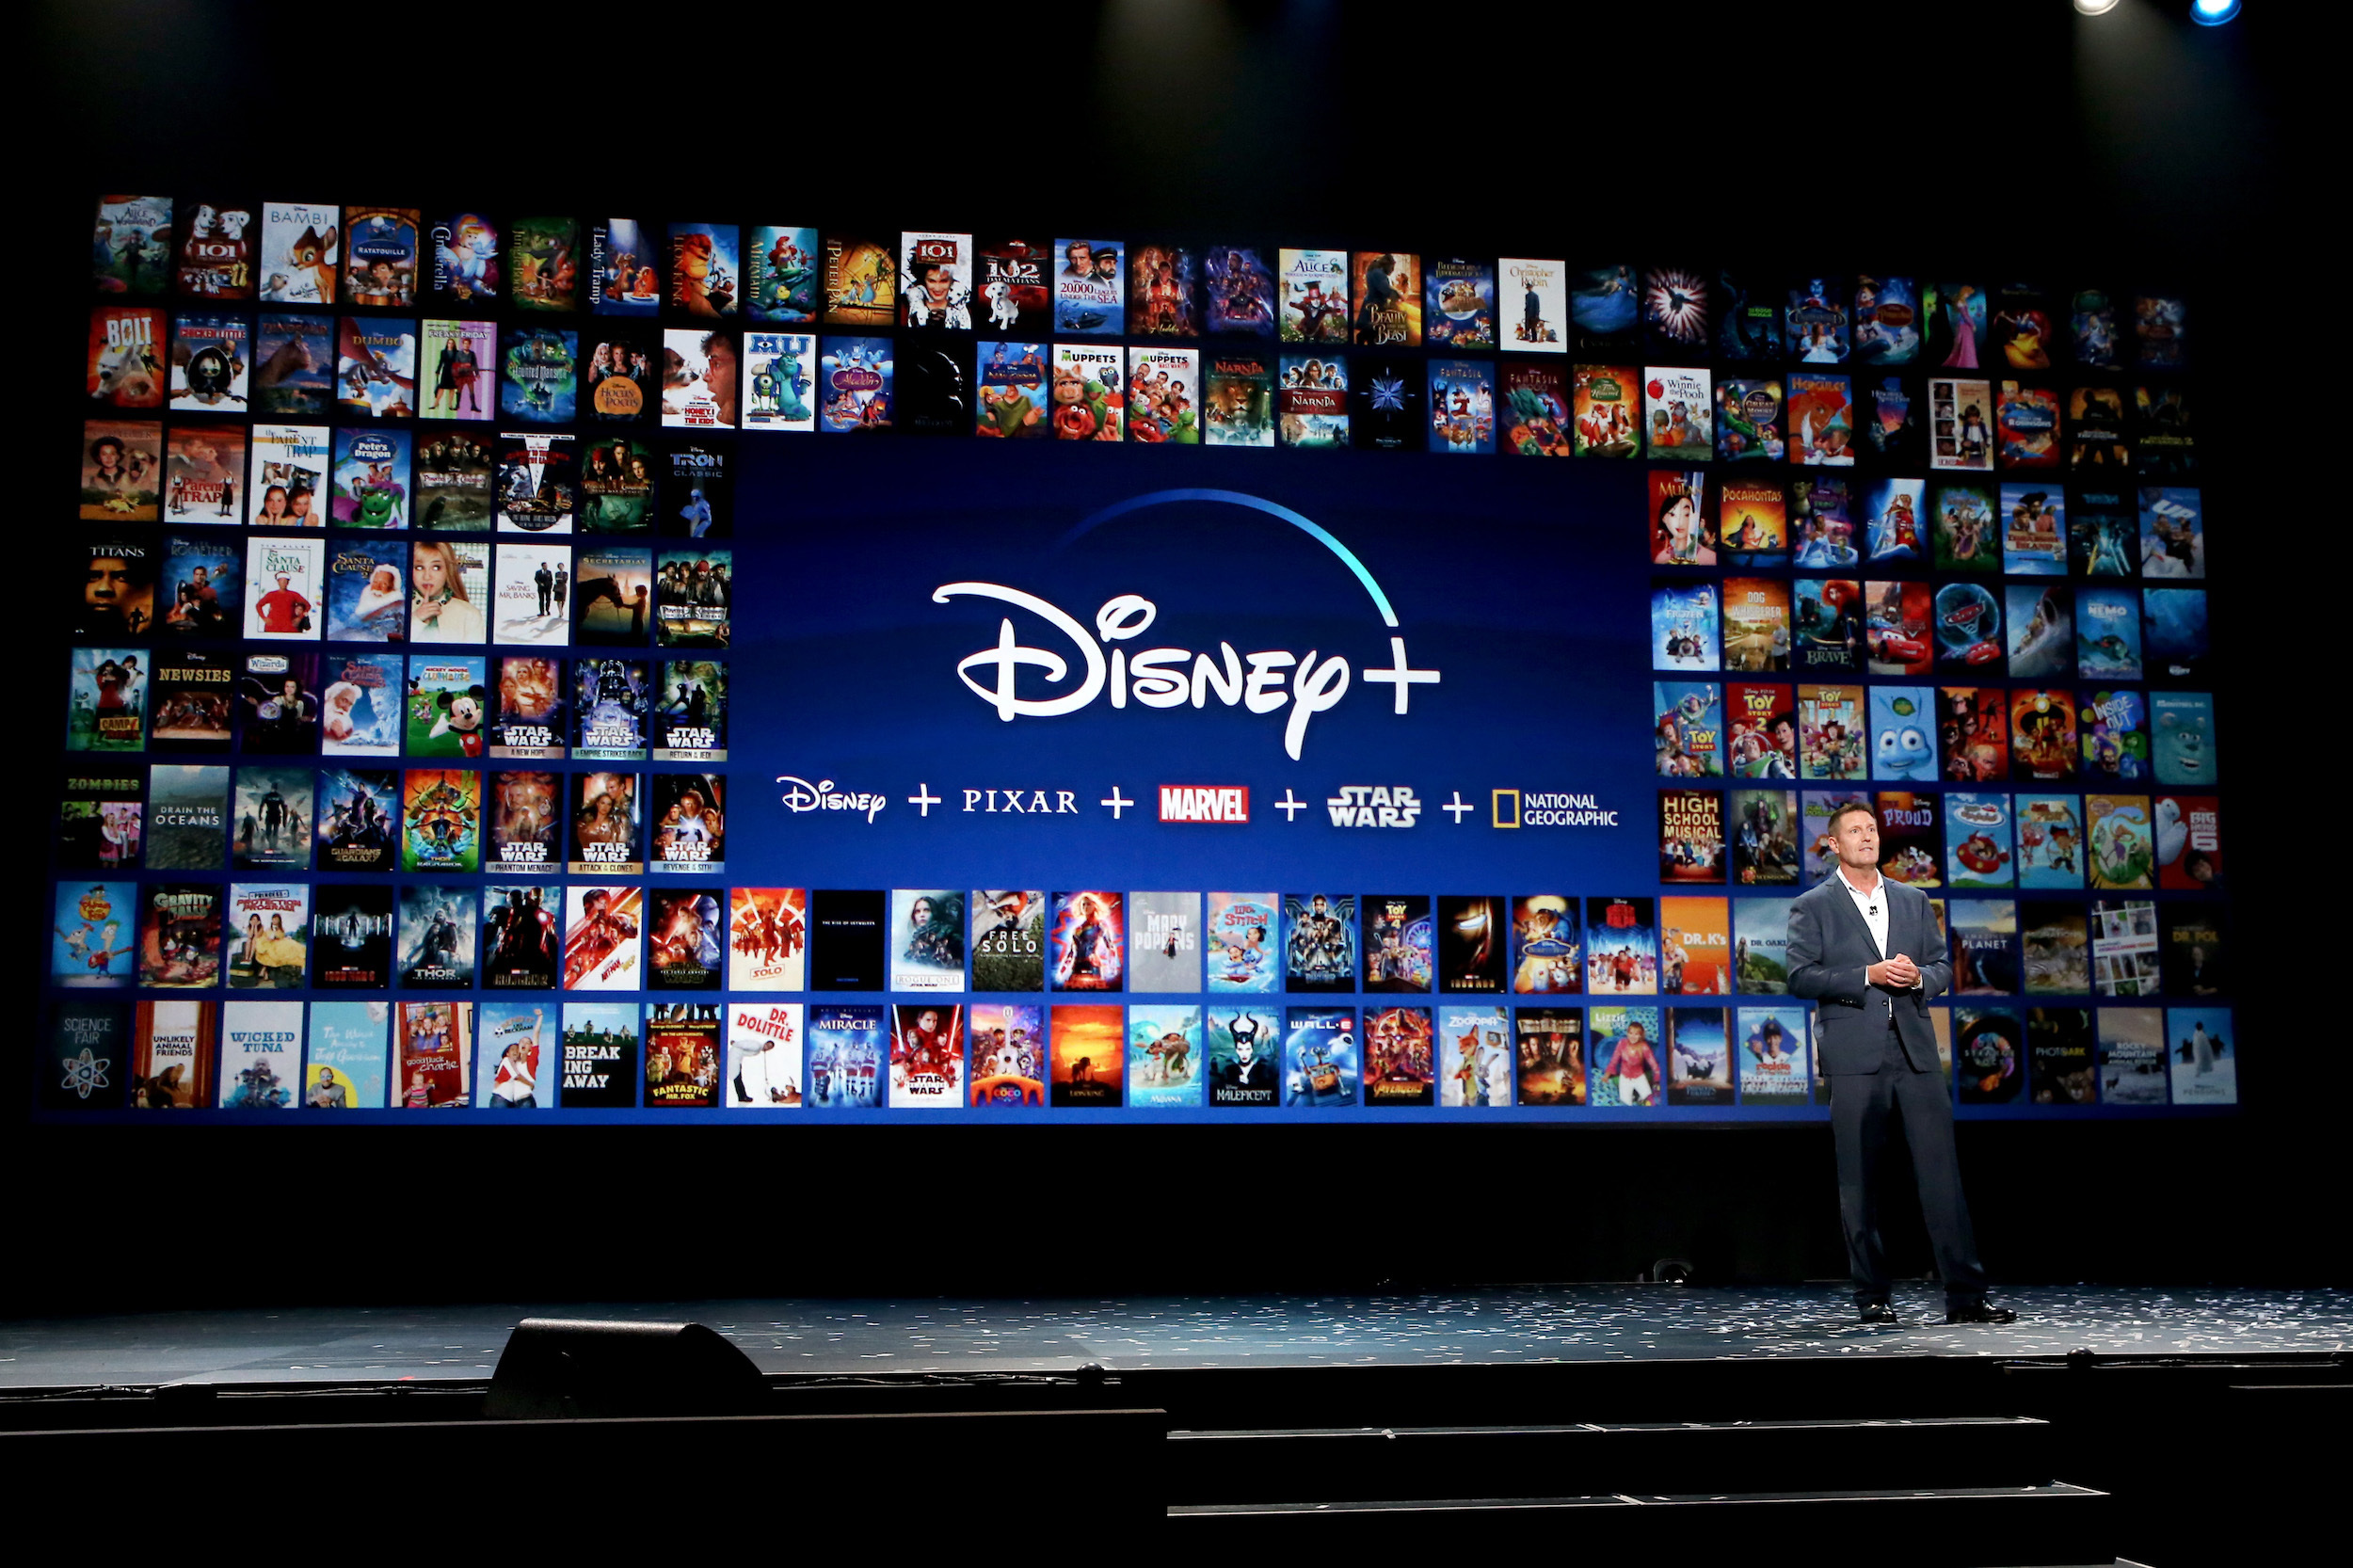 Chairman of Direct-to-Consumer & International division of The Walt Disney Company Kevin Mayer took part today in the Disney+ Showcase at Disney's D23 EXPO